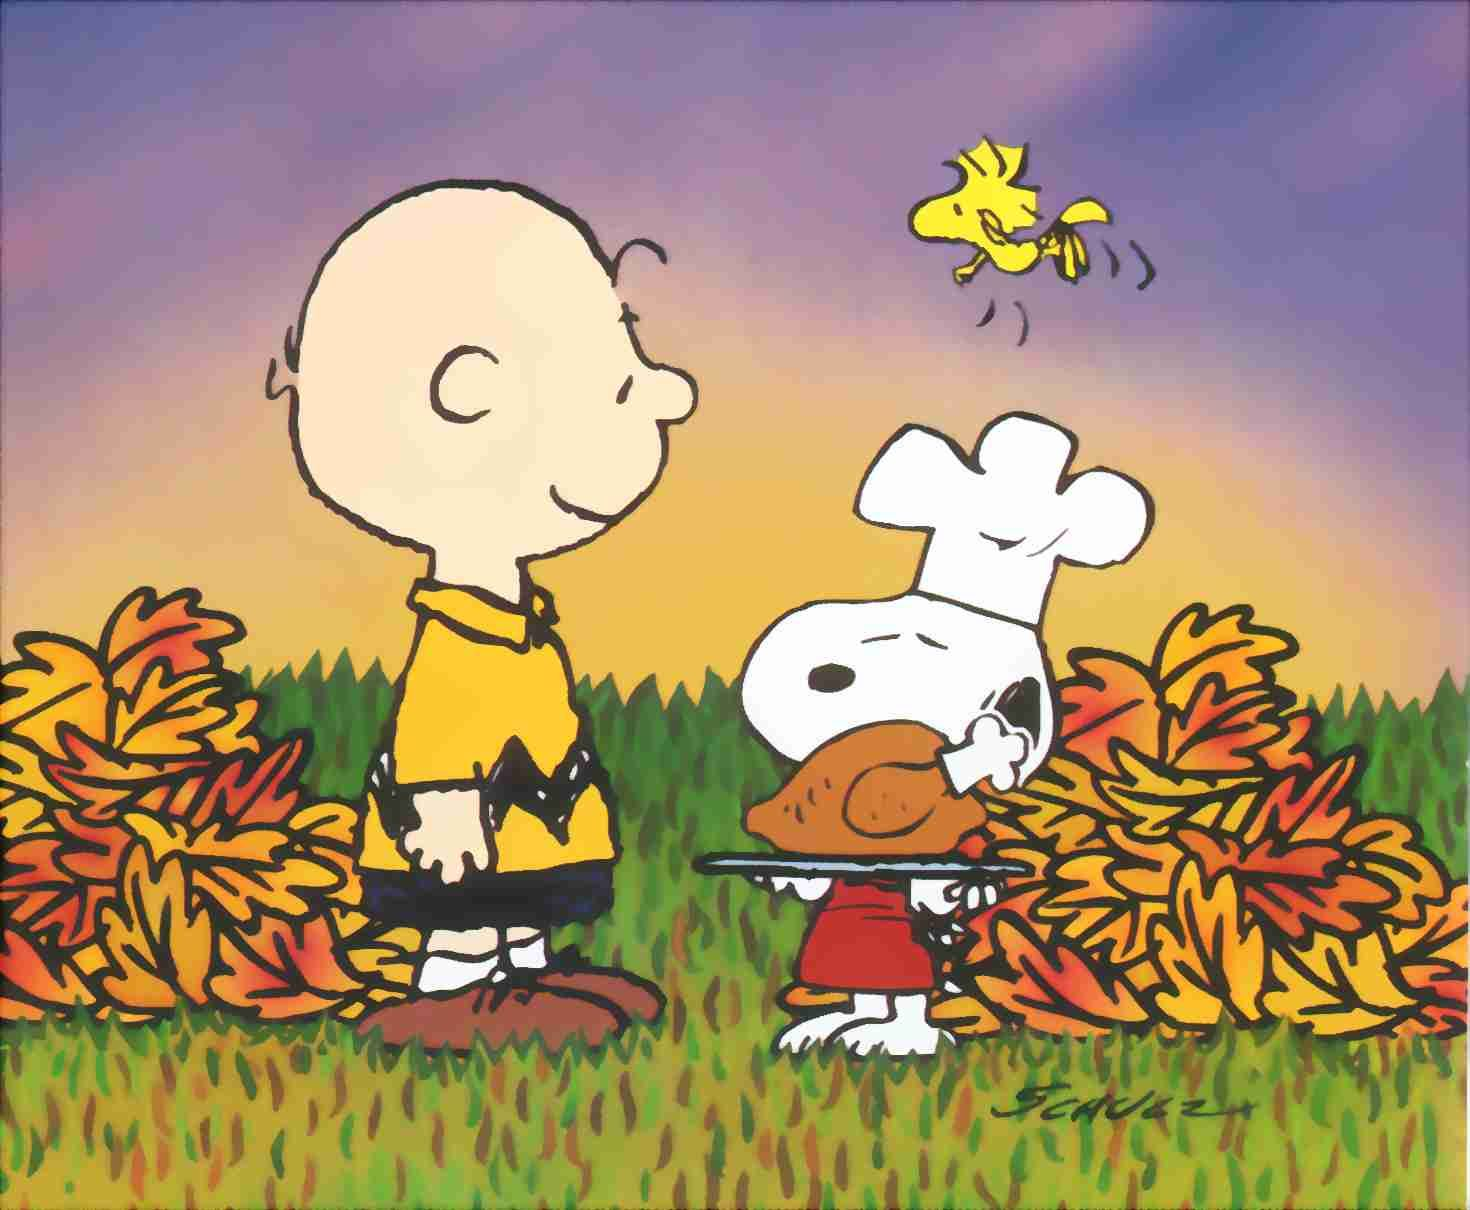 Thanksgiving Charlie Brown Wallpapers Hd Thanksgiving Snoopy Funny Thanksgiving Pictures Charlie Brown Thanksgiving